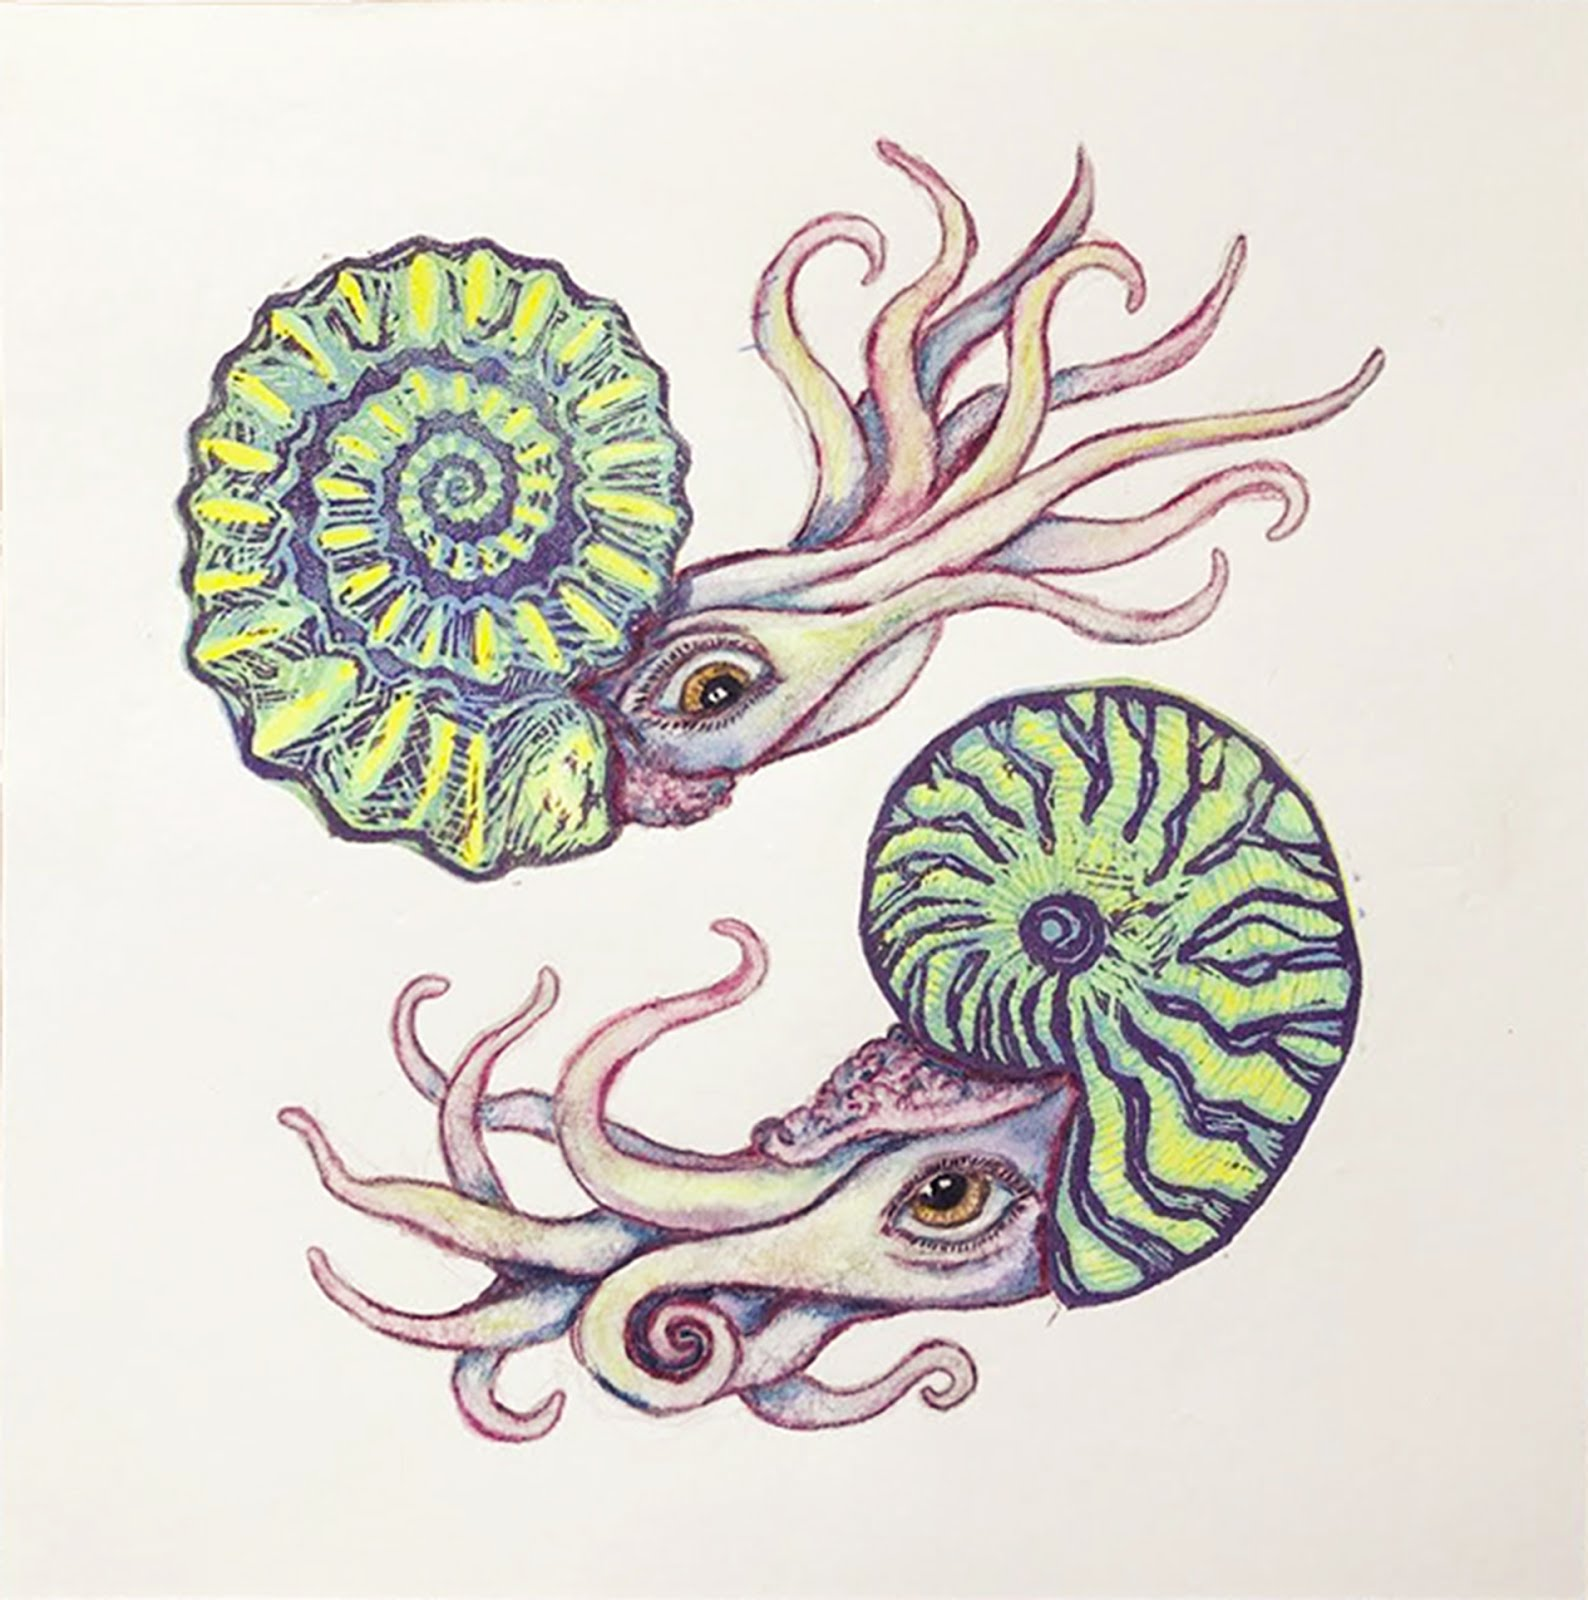 The Nautilus and the Ammonite book will be released this June!